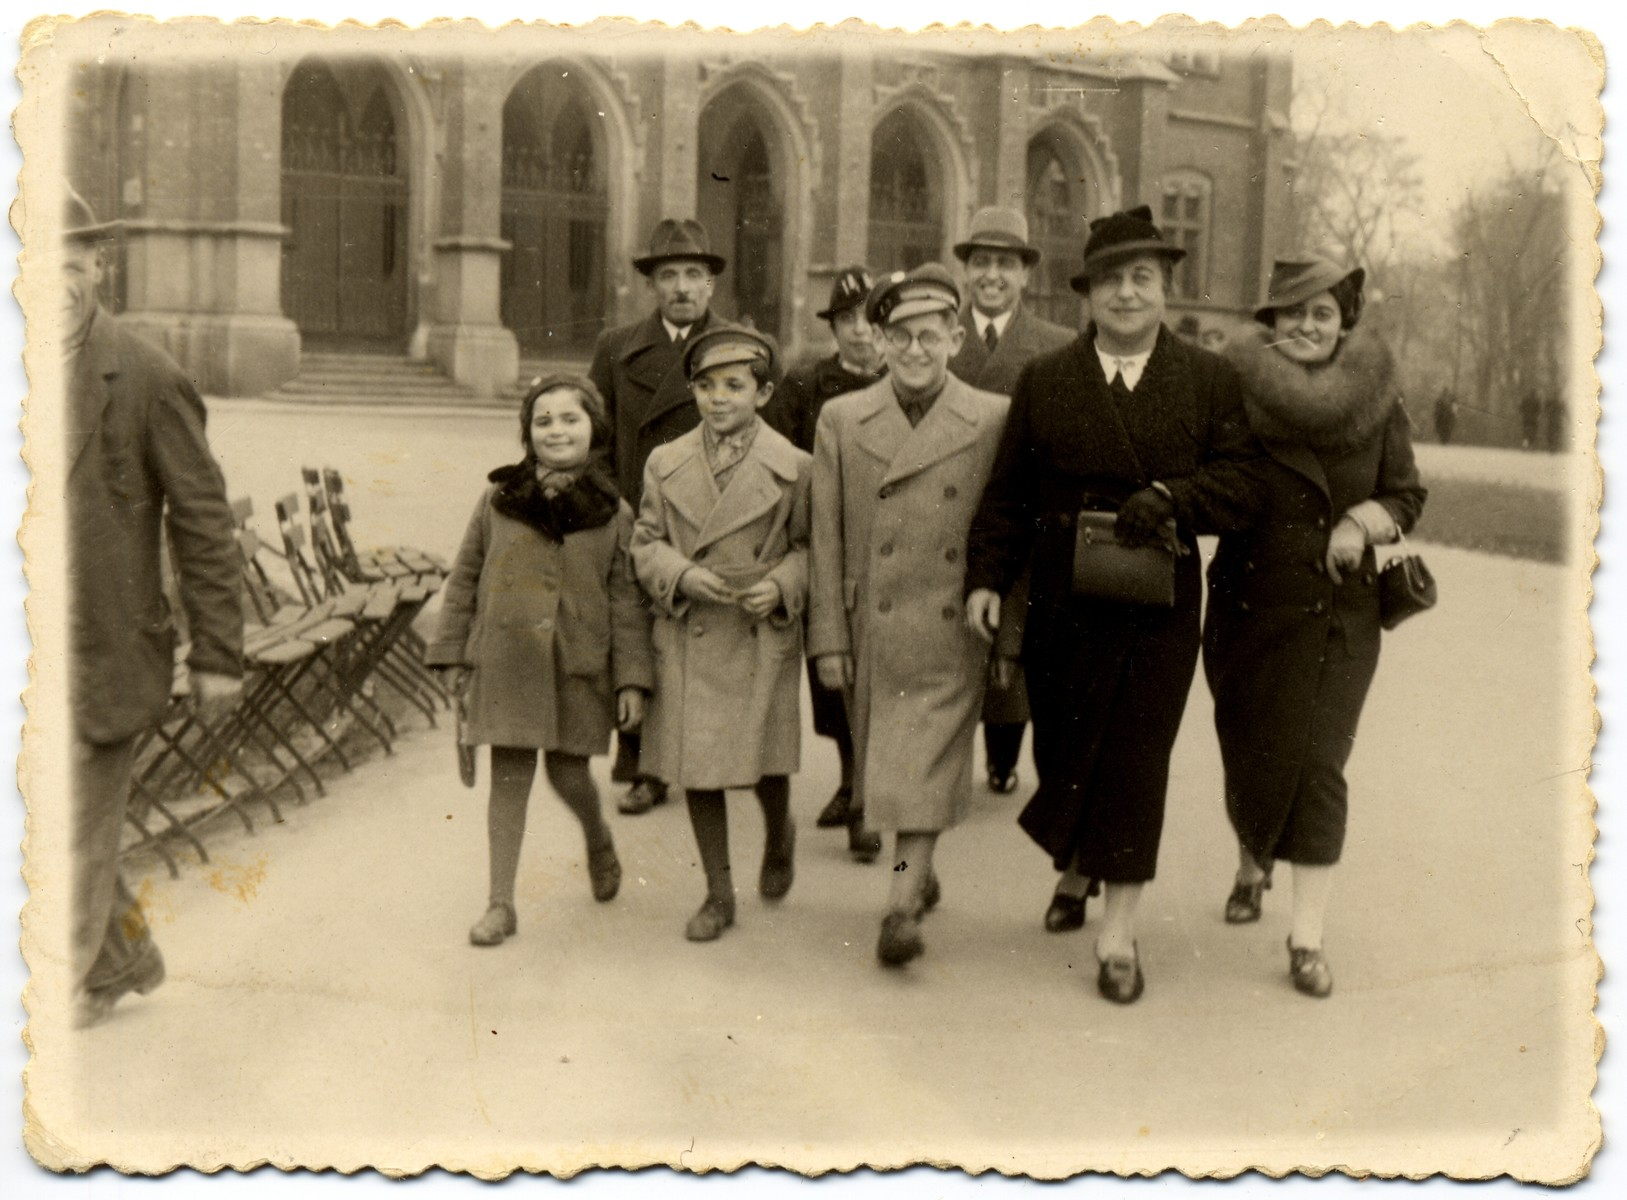 Group portrait of adults and children walking in front of the Jagiellonski University in Krakow.   Pictured in the front row, from left to right are Dola and Josef Horowitz, unknown, Esther? Zehnwirth and Rozia Lesser.  In the back row, from left to right, are: Chaim and Fela Horowitz, and Fela's brother, Monek Lesser who had just graduated from the Medical Faculty of the Jagiellonski University.